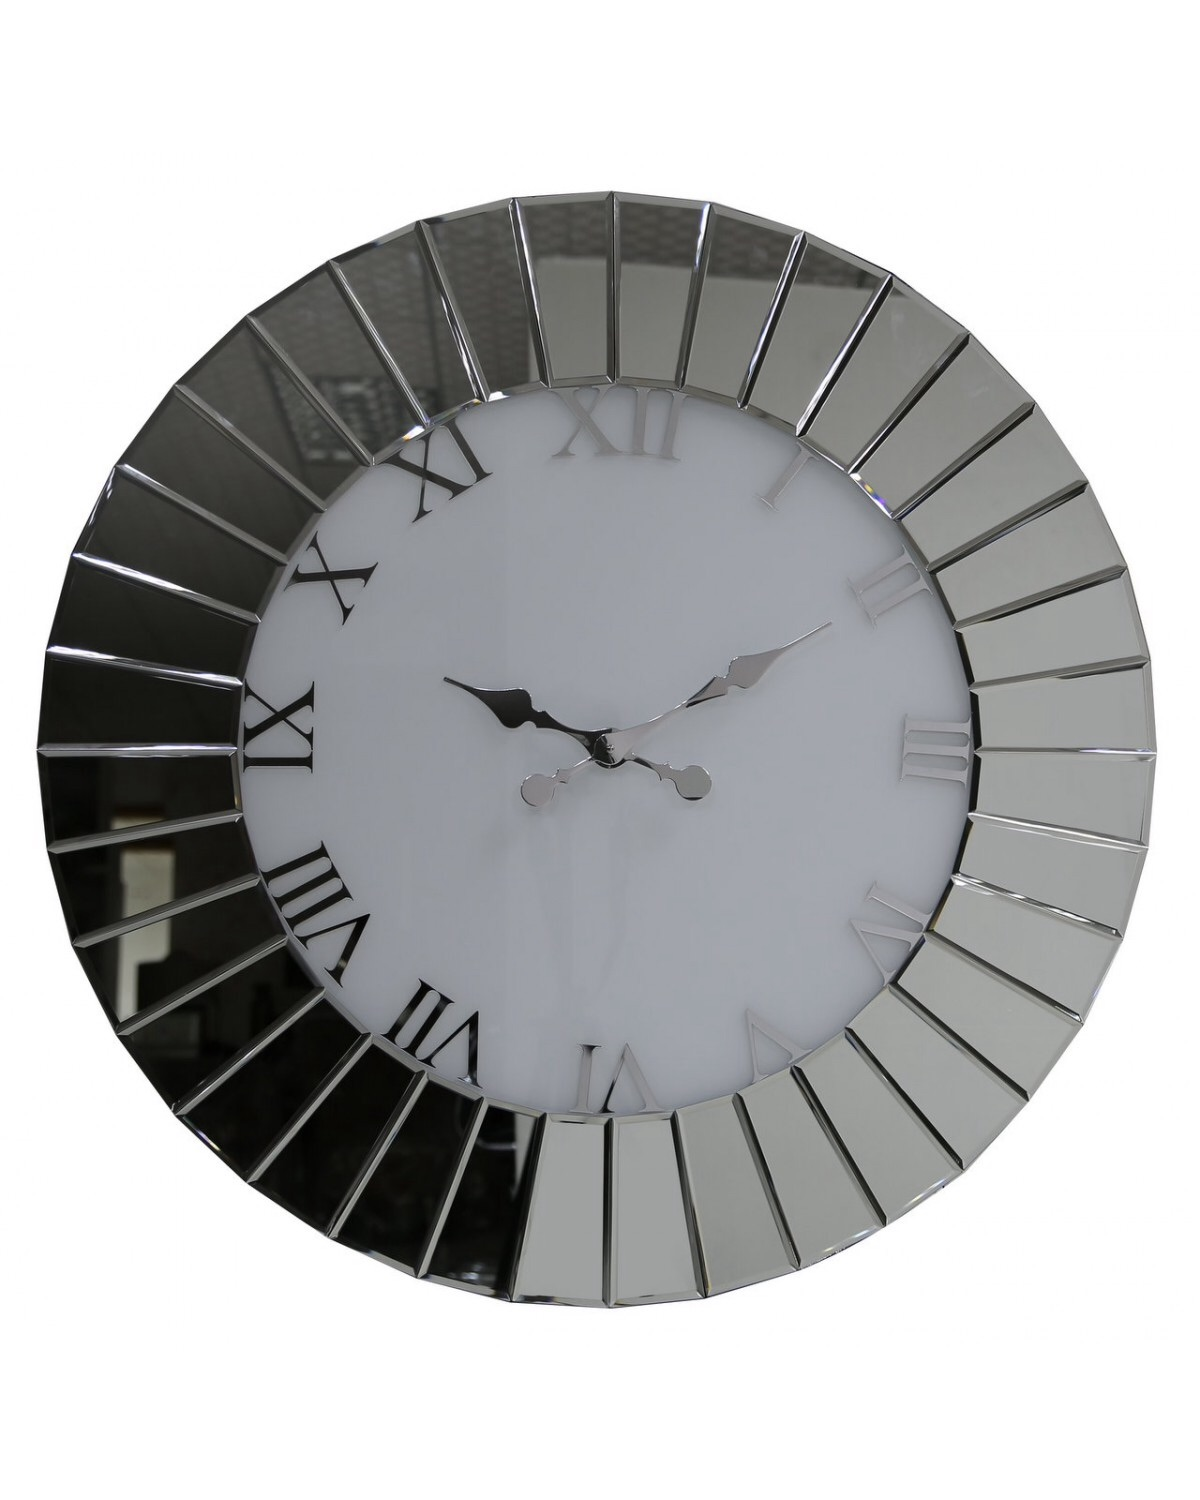 Round Mirrored Wall Clock 60cm Dia In Stock For A Fast